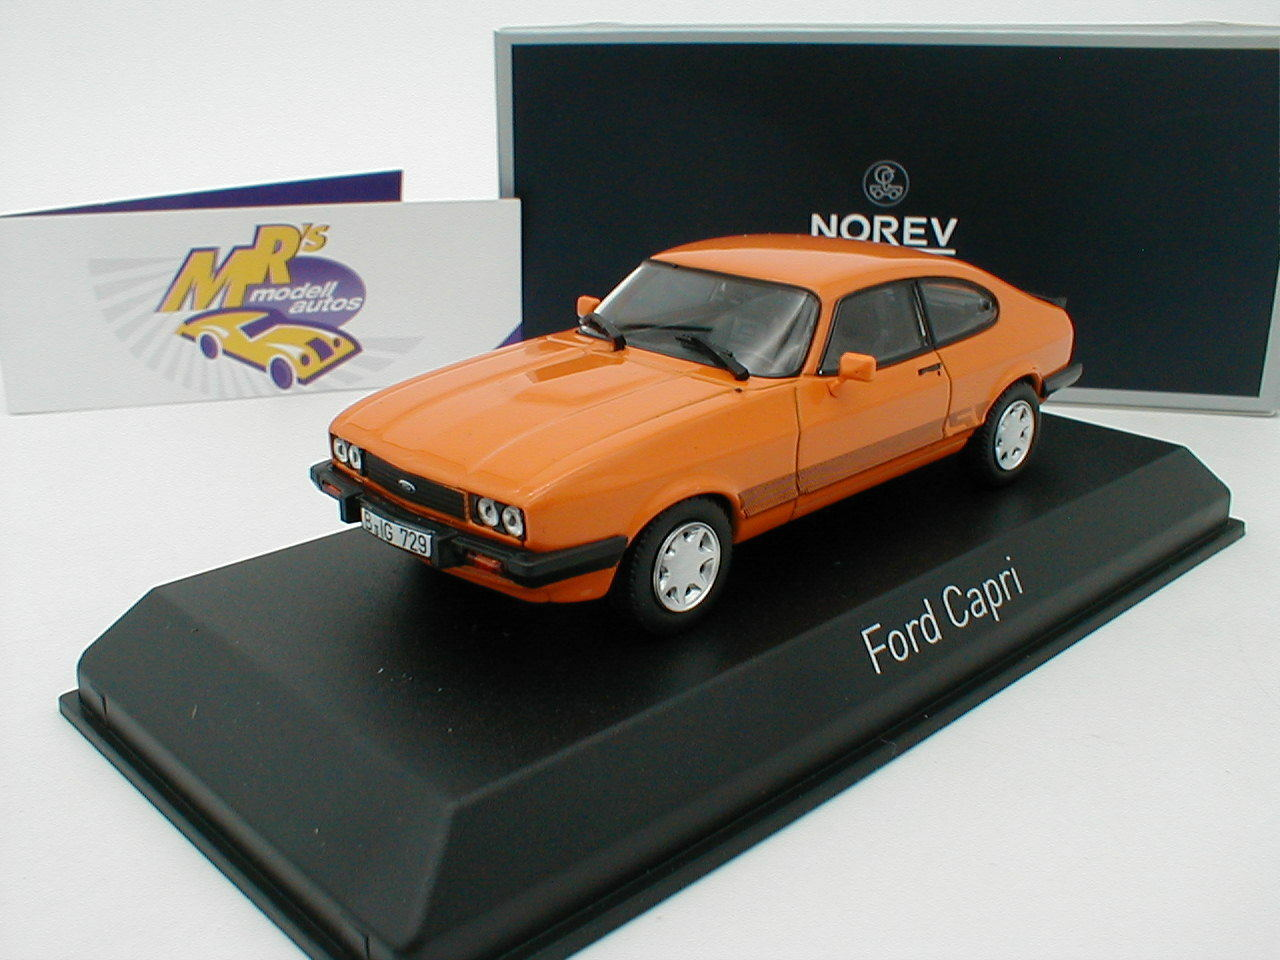 NOREV 270563   FORD CAPRI III Youngtimer année de fabrication 1980 in  Orange  1 43 NEUF